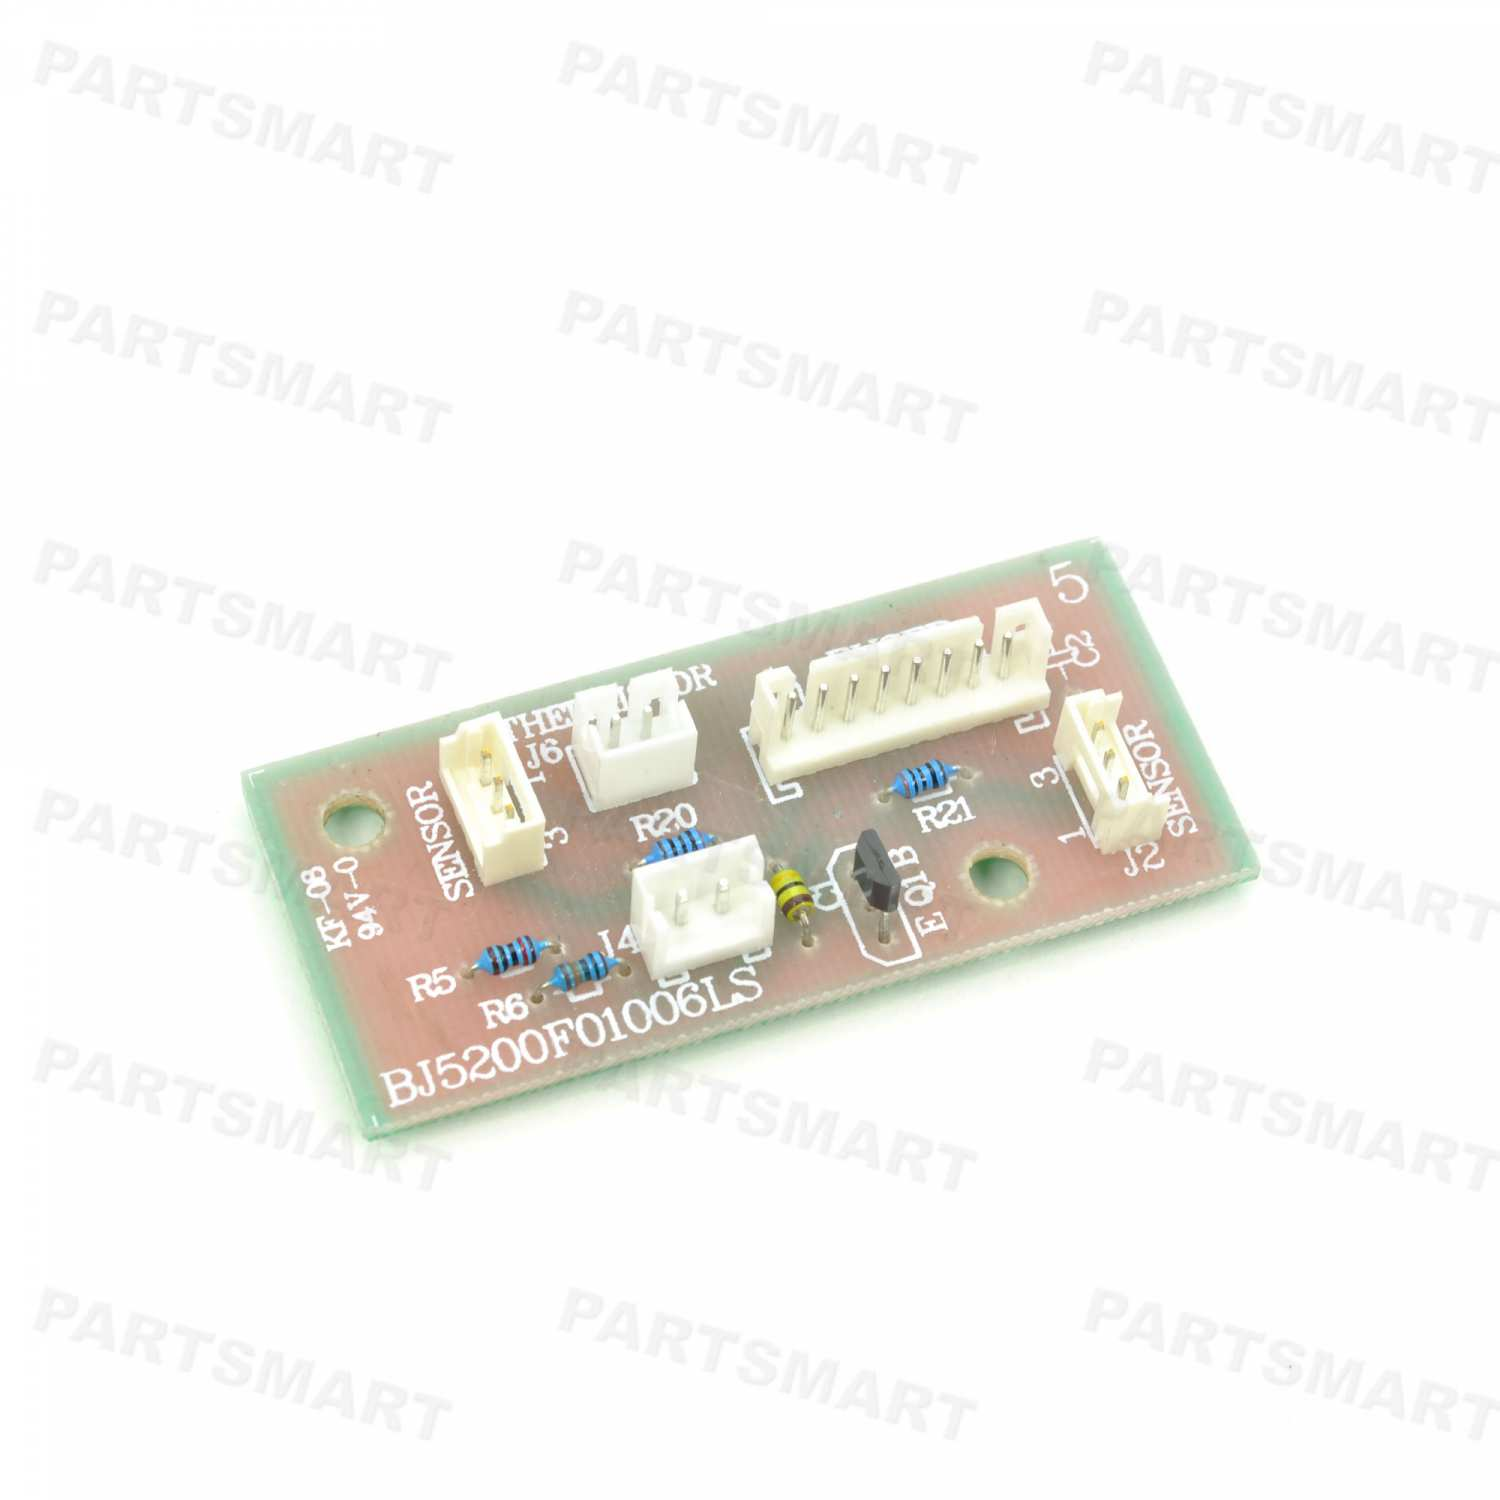 CARD-T522 Fuser Card ASM for Lexmark T52x